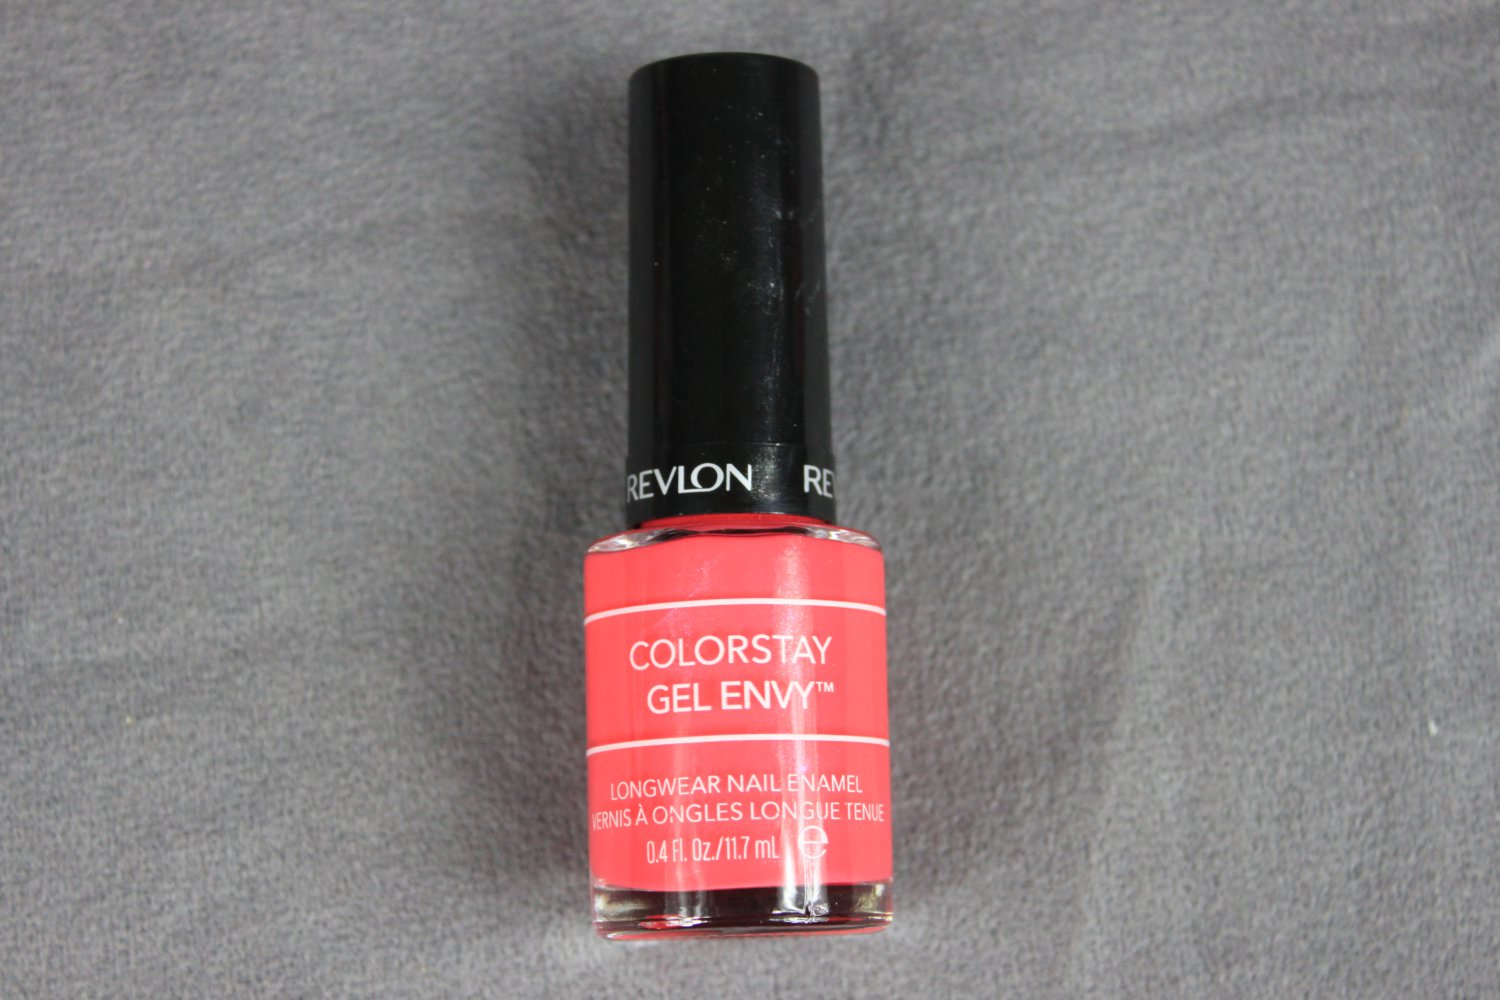 Revlon Colorstay Gel Envy Nail Enamel #130 POCKET ACES Nail Polish